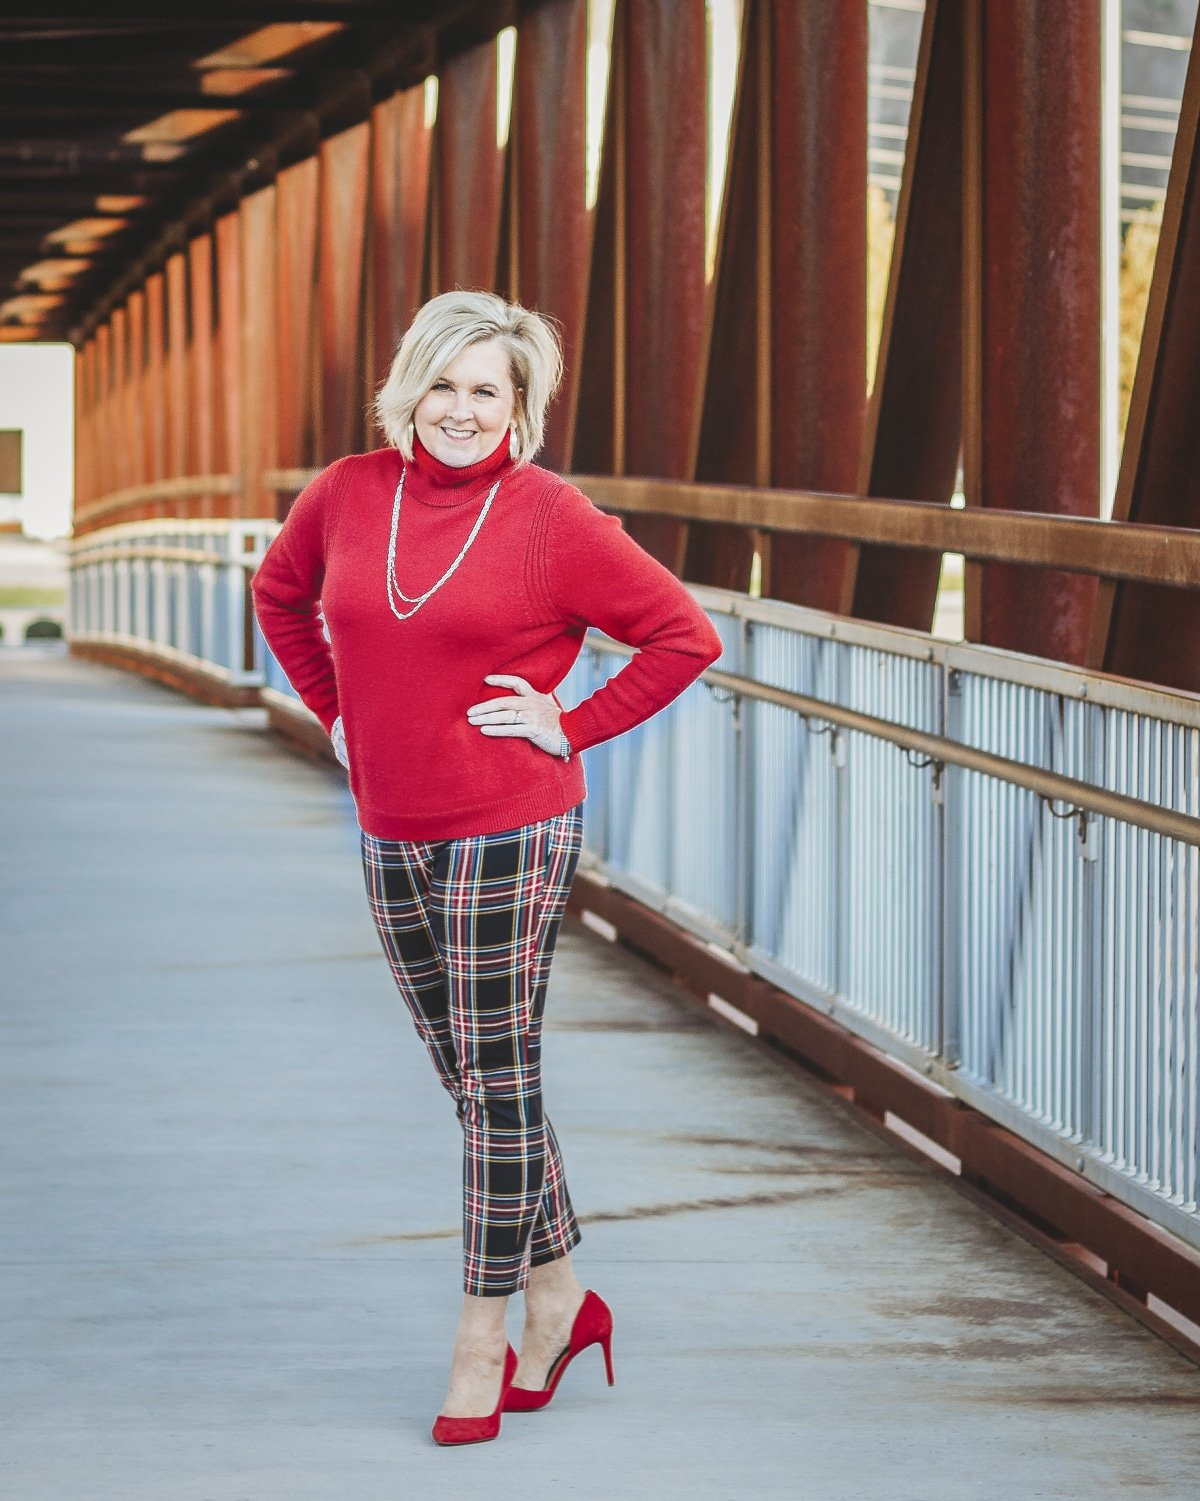 Fashion Blogger 50 Is Not Old is looking festive in this red turtleneck sweater, gold jewelry, plaid pants, and red heels